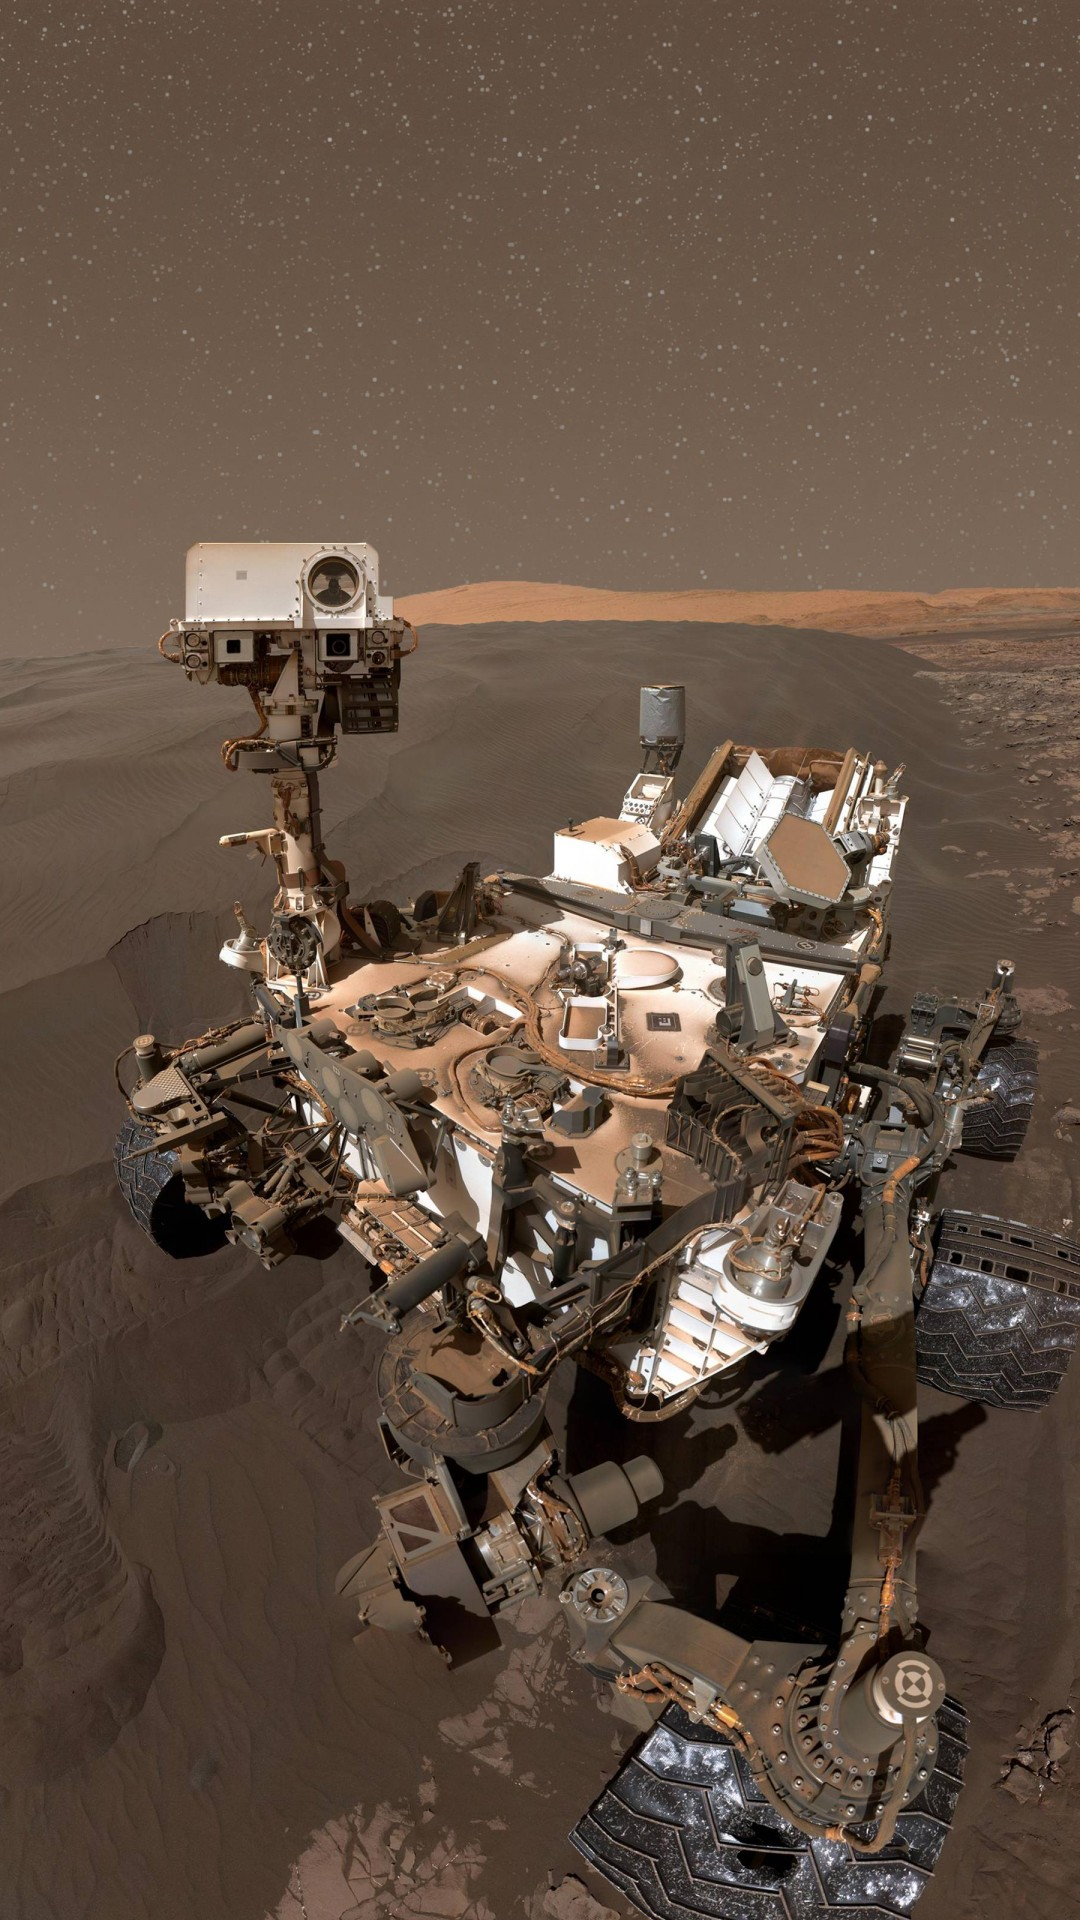 Red Dragon Girl Wallpaper Wallpaper Curiosity Rover Selfie Mars Duna Hi Tech 8716